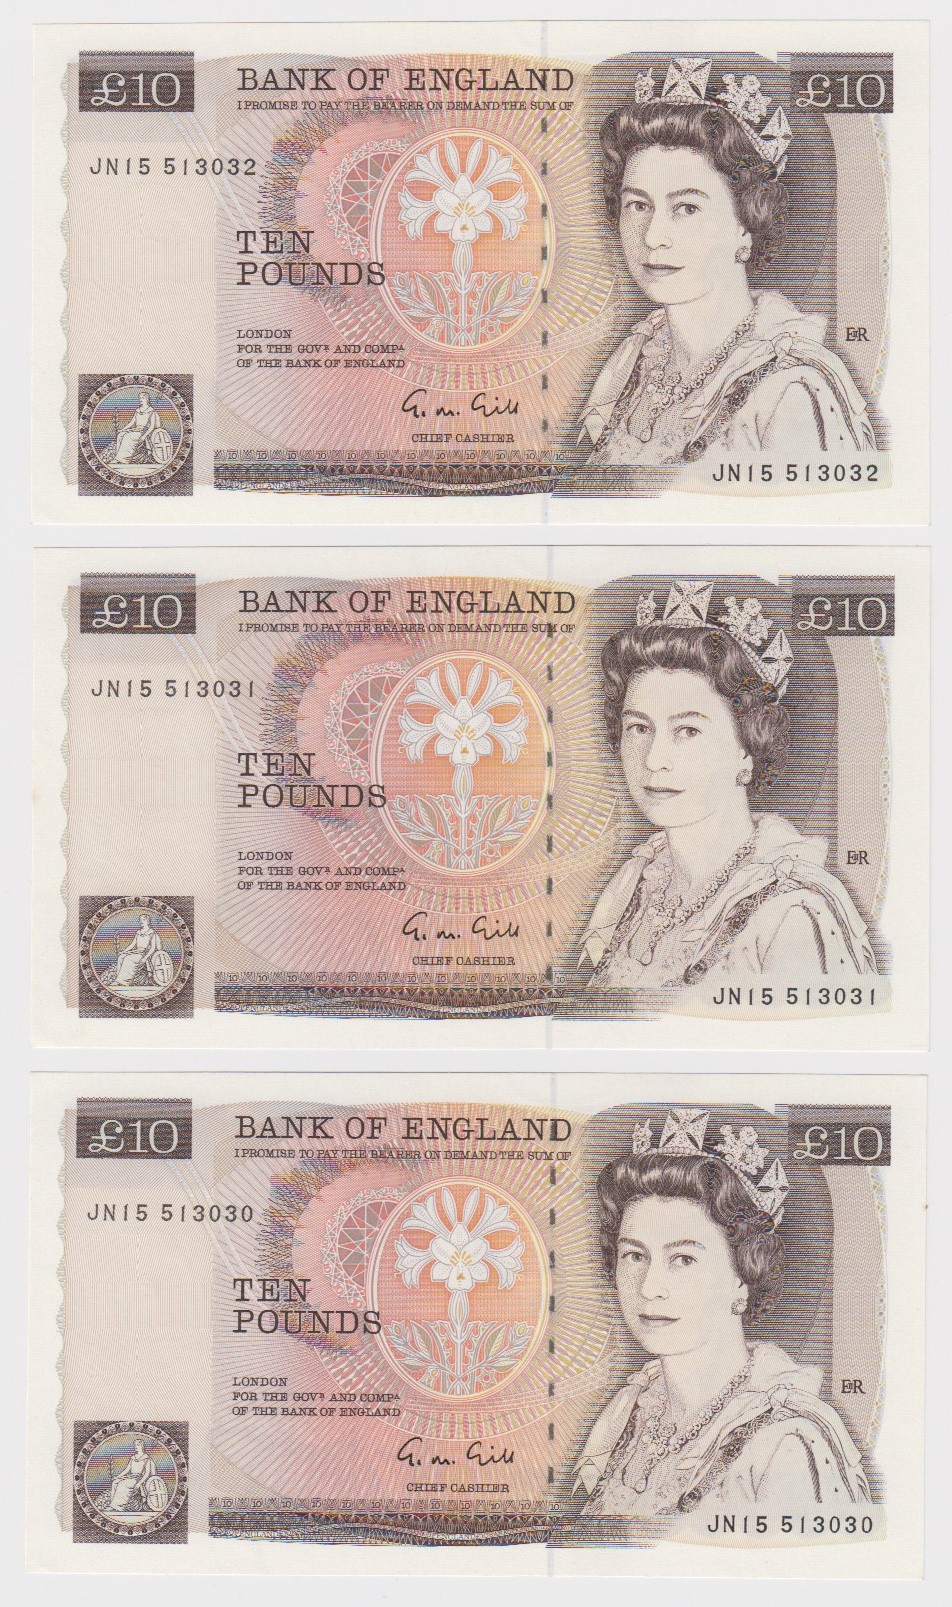 Gill 10 Pounds (3) issued 1988, a consecutively numbered run, serial JN15 513030 - JN15 513032 (